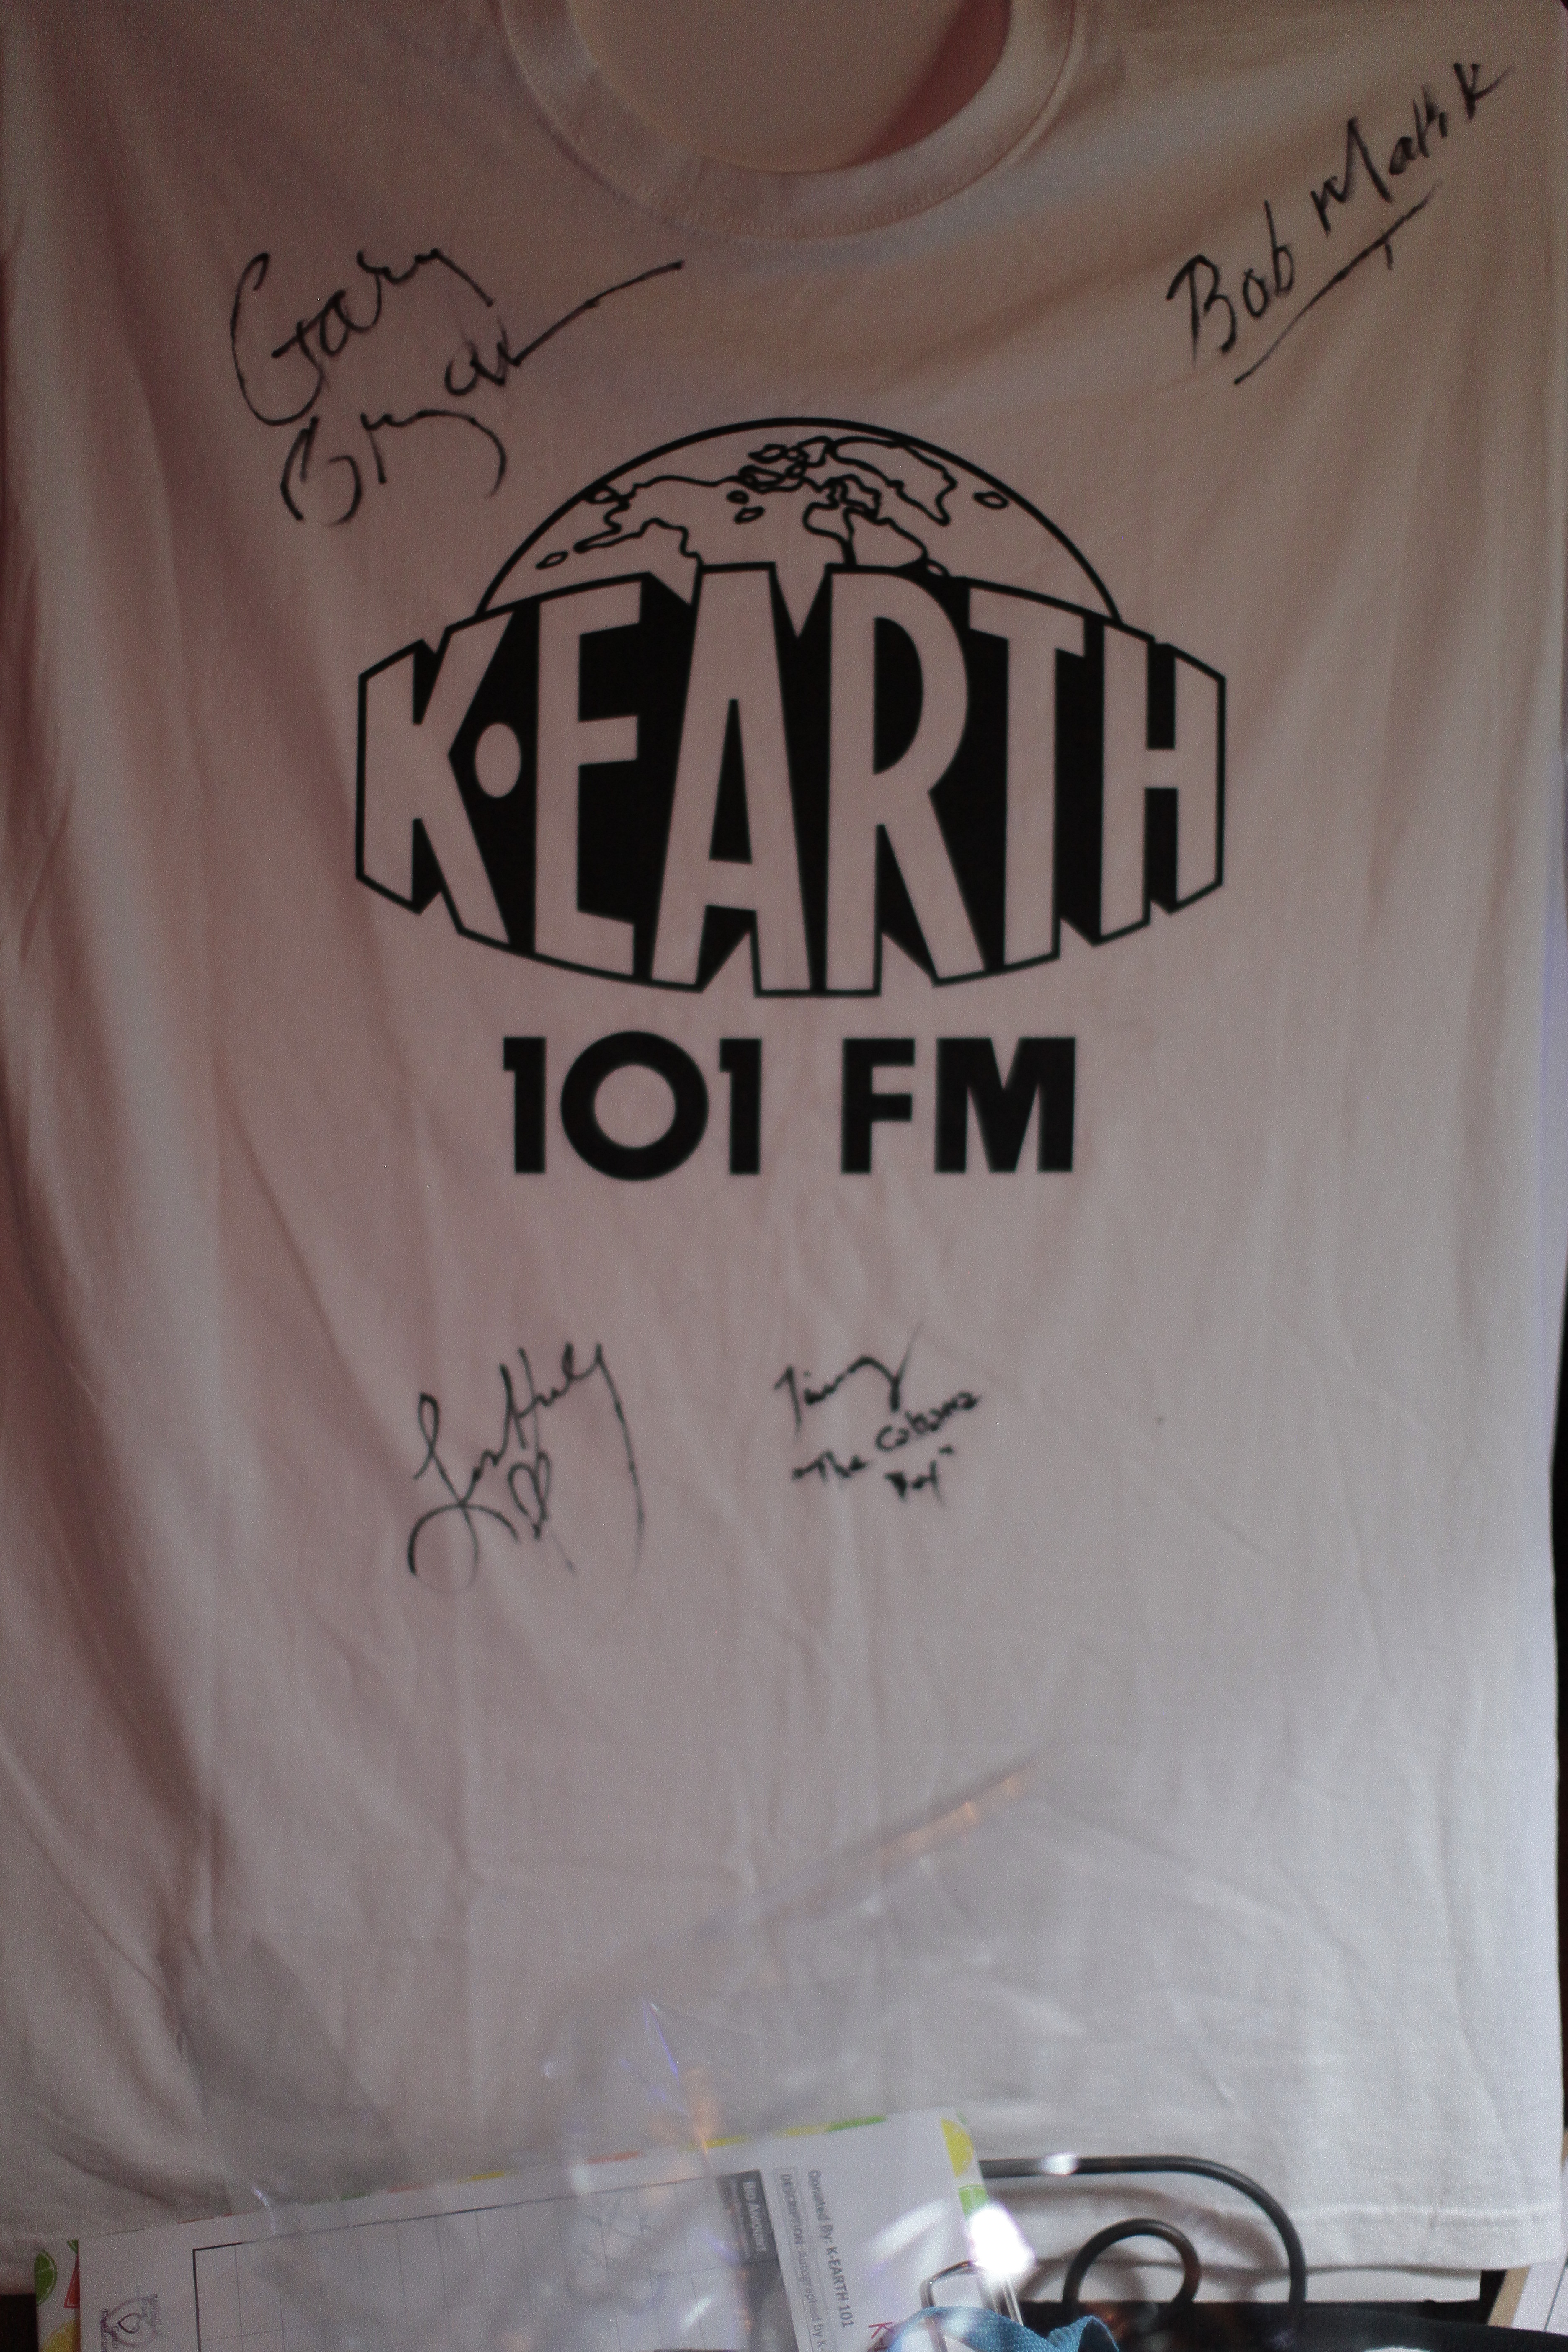 K-Earth 101 signed shirt